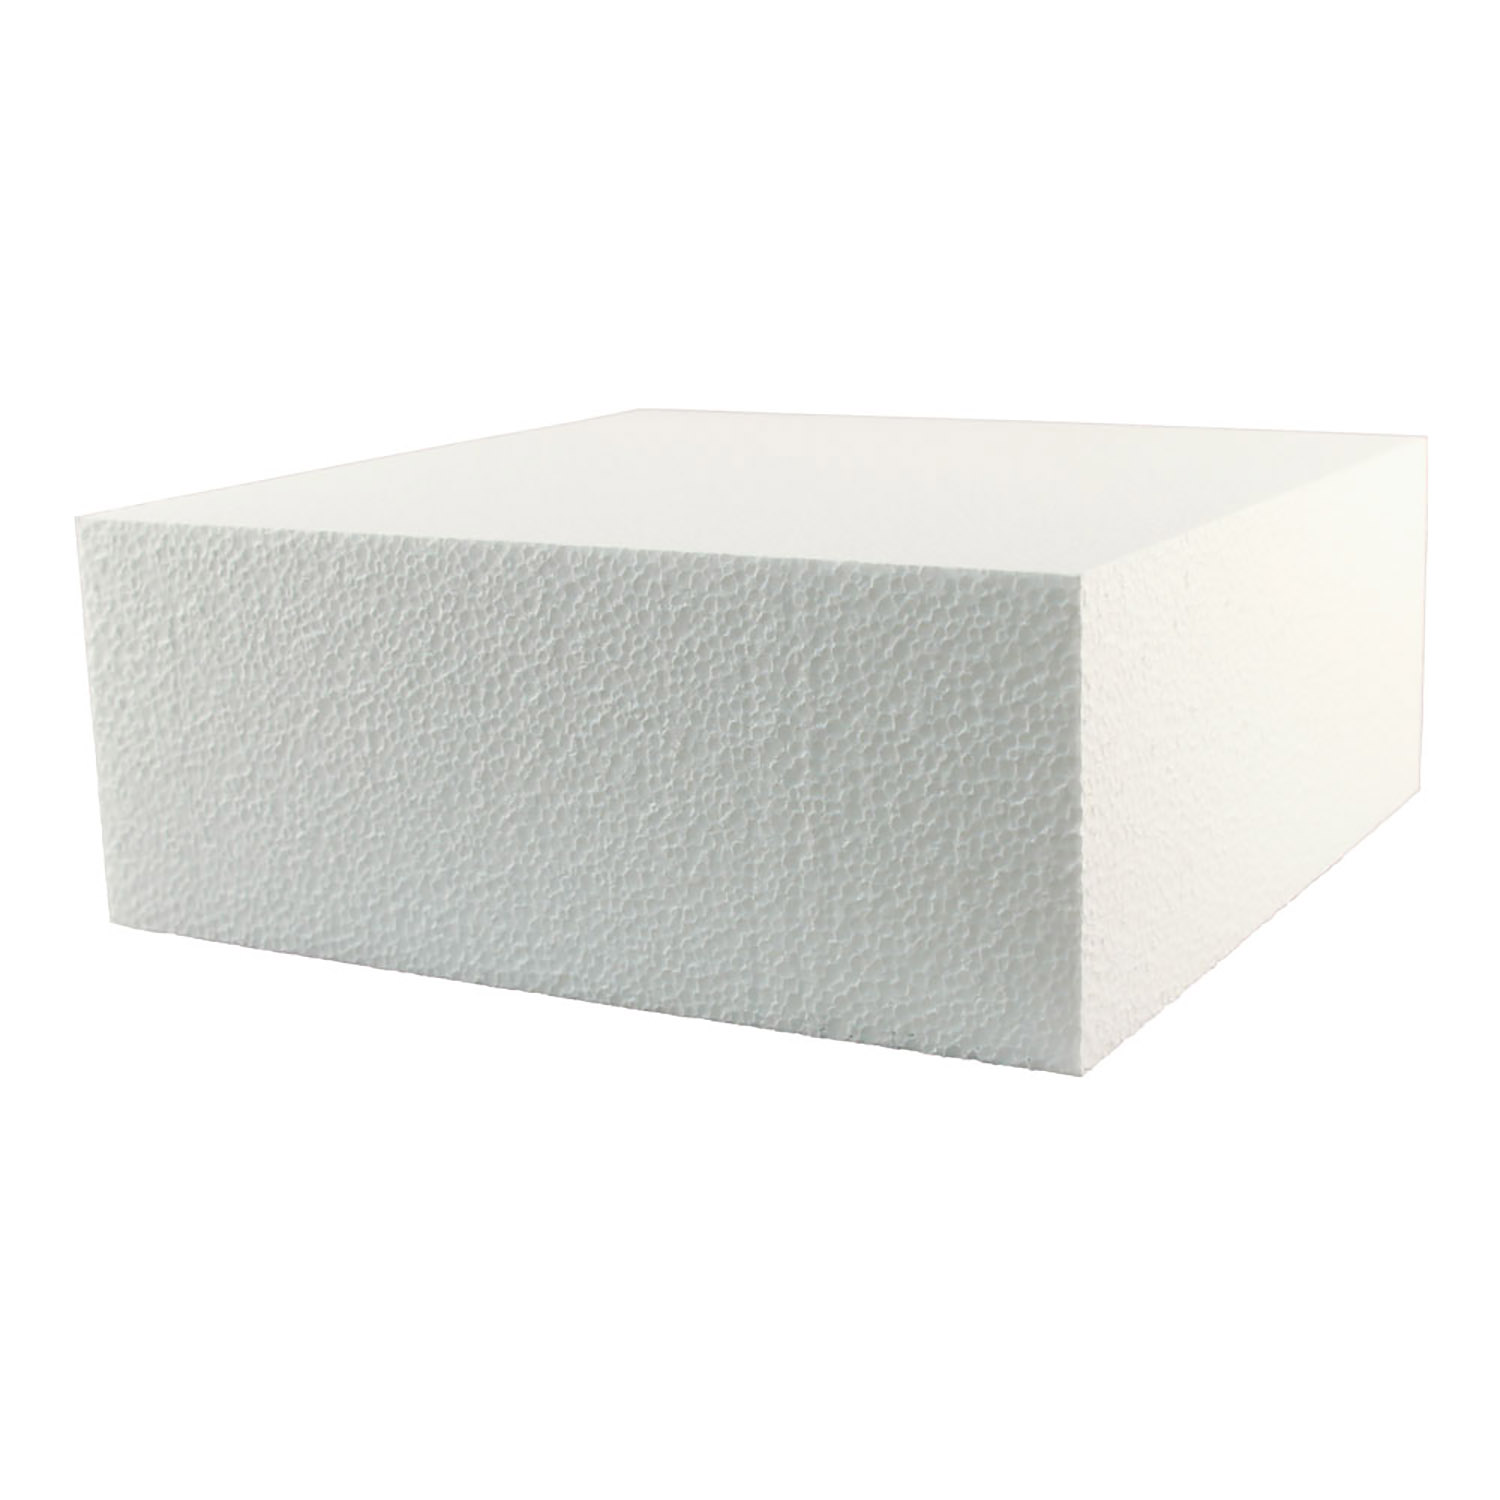 18 Quot X 4 Quot Square Styrofoam Cake Dummy 21 1418 Country